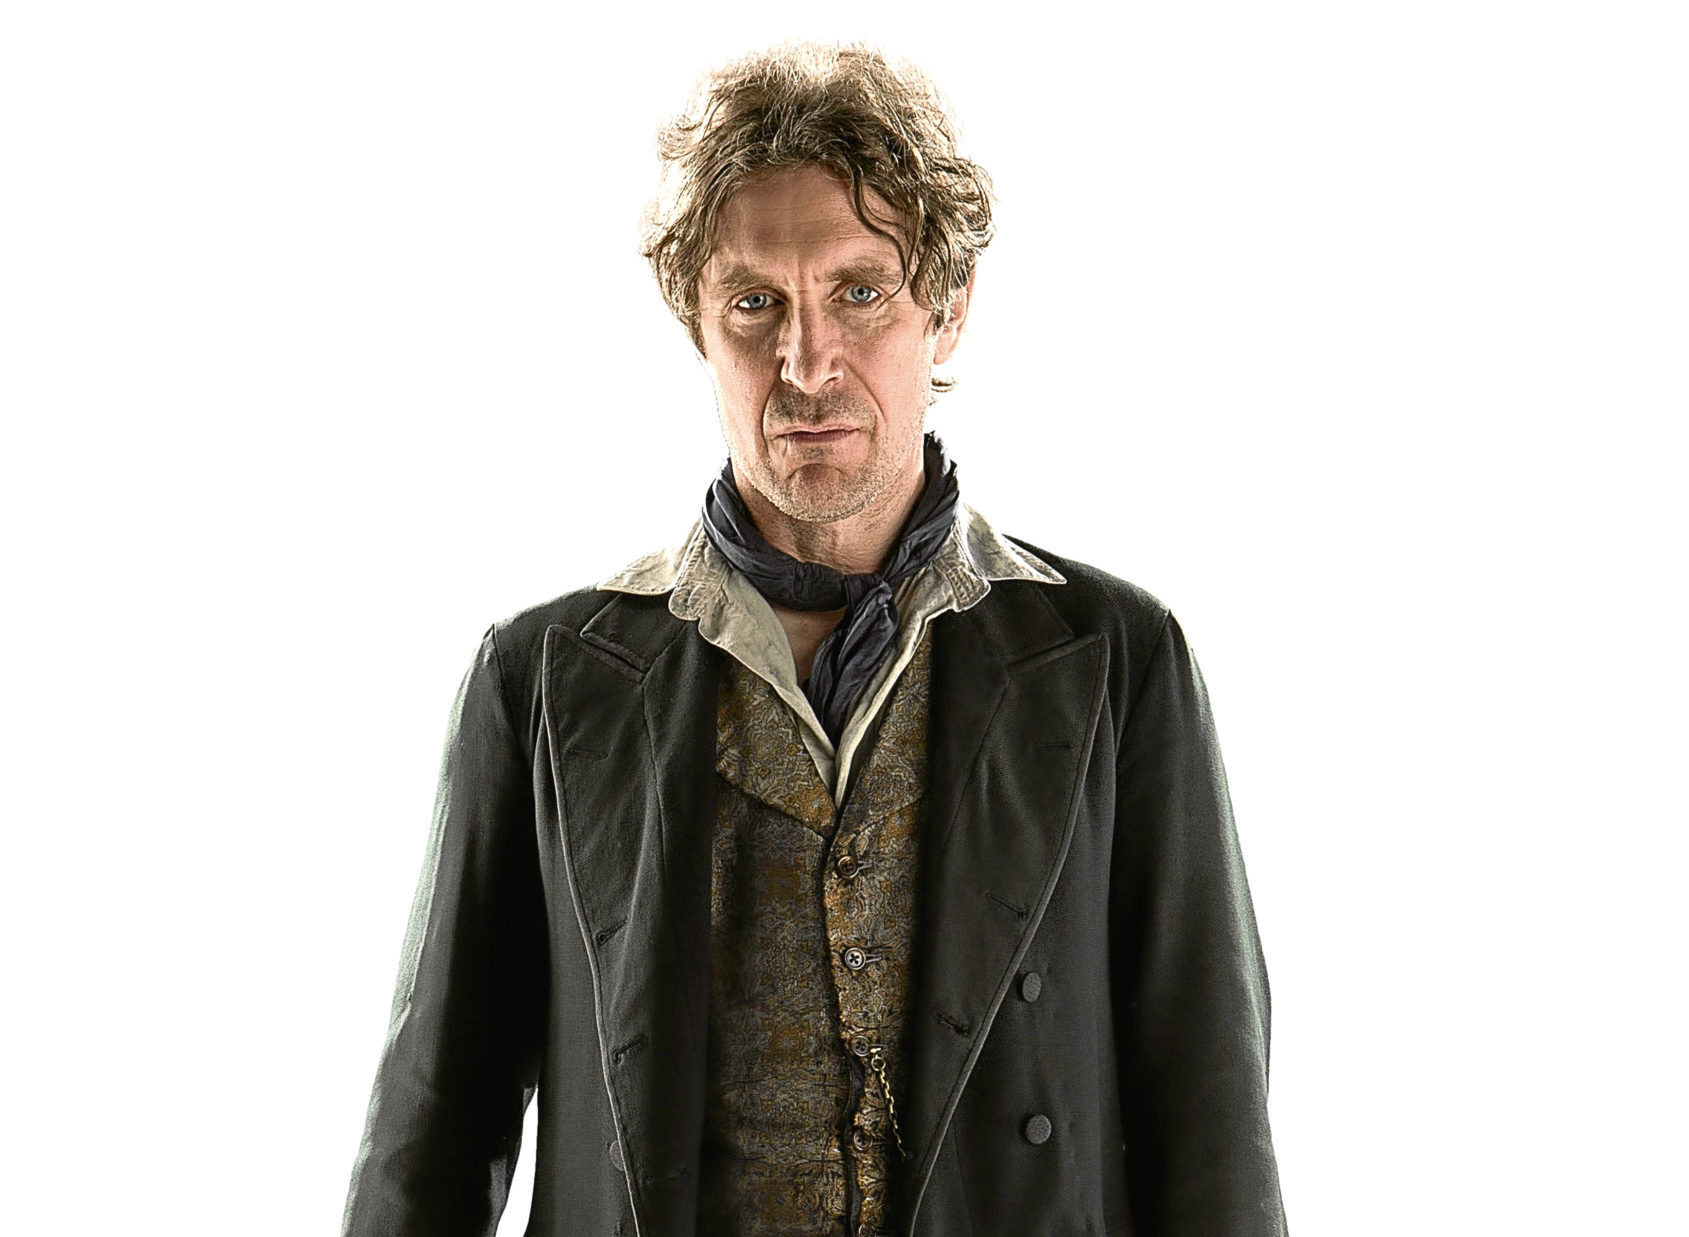 Former Doctor Paul McGann